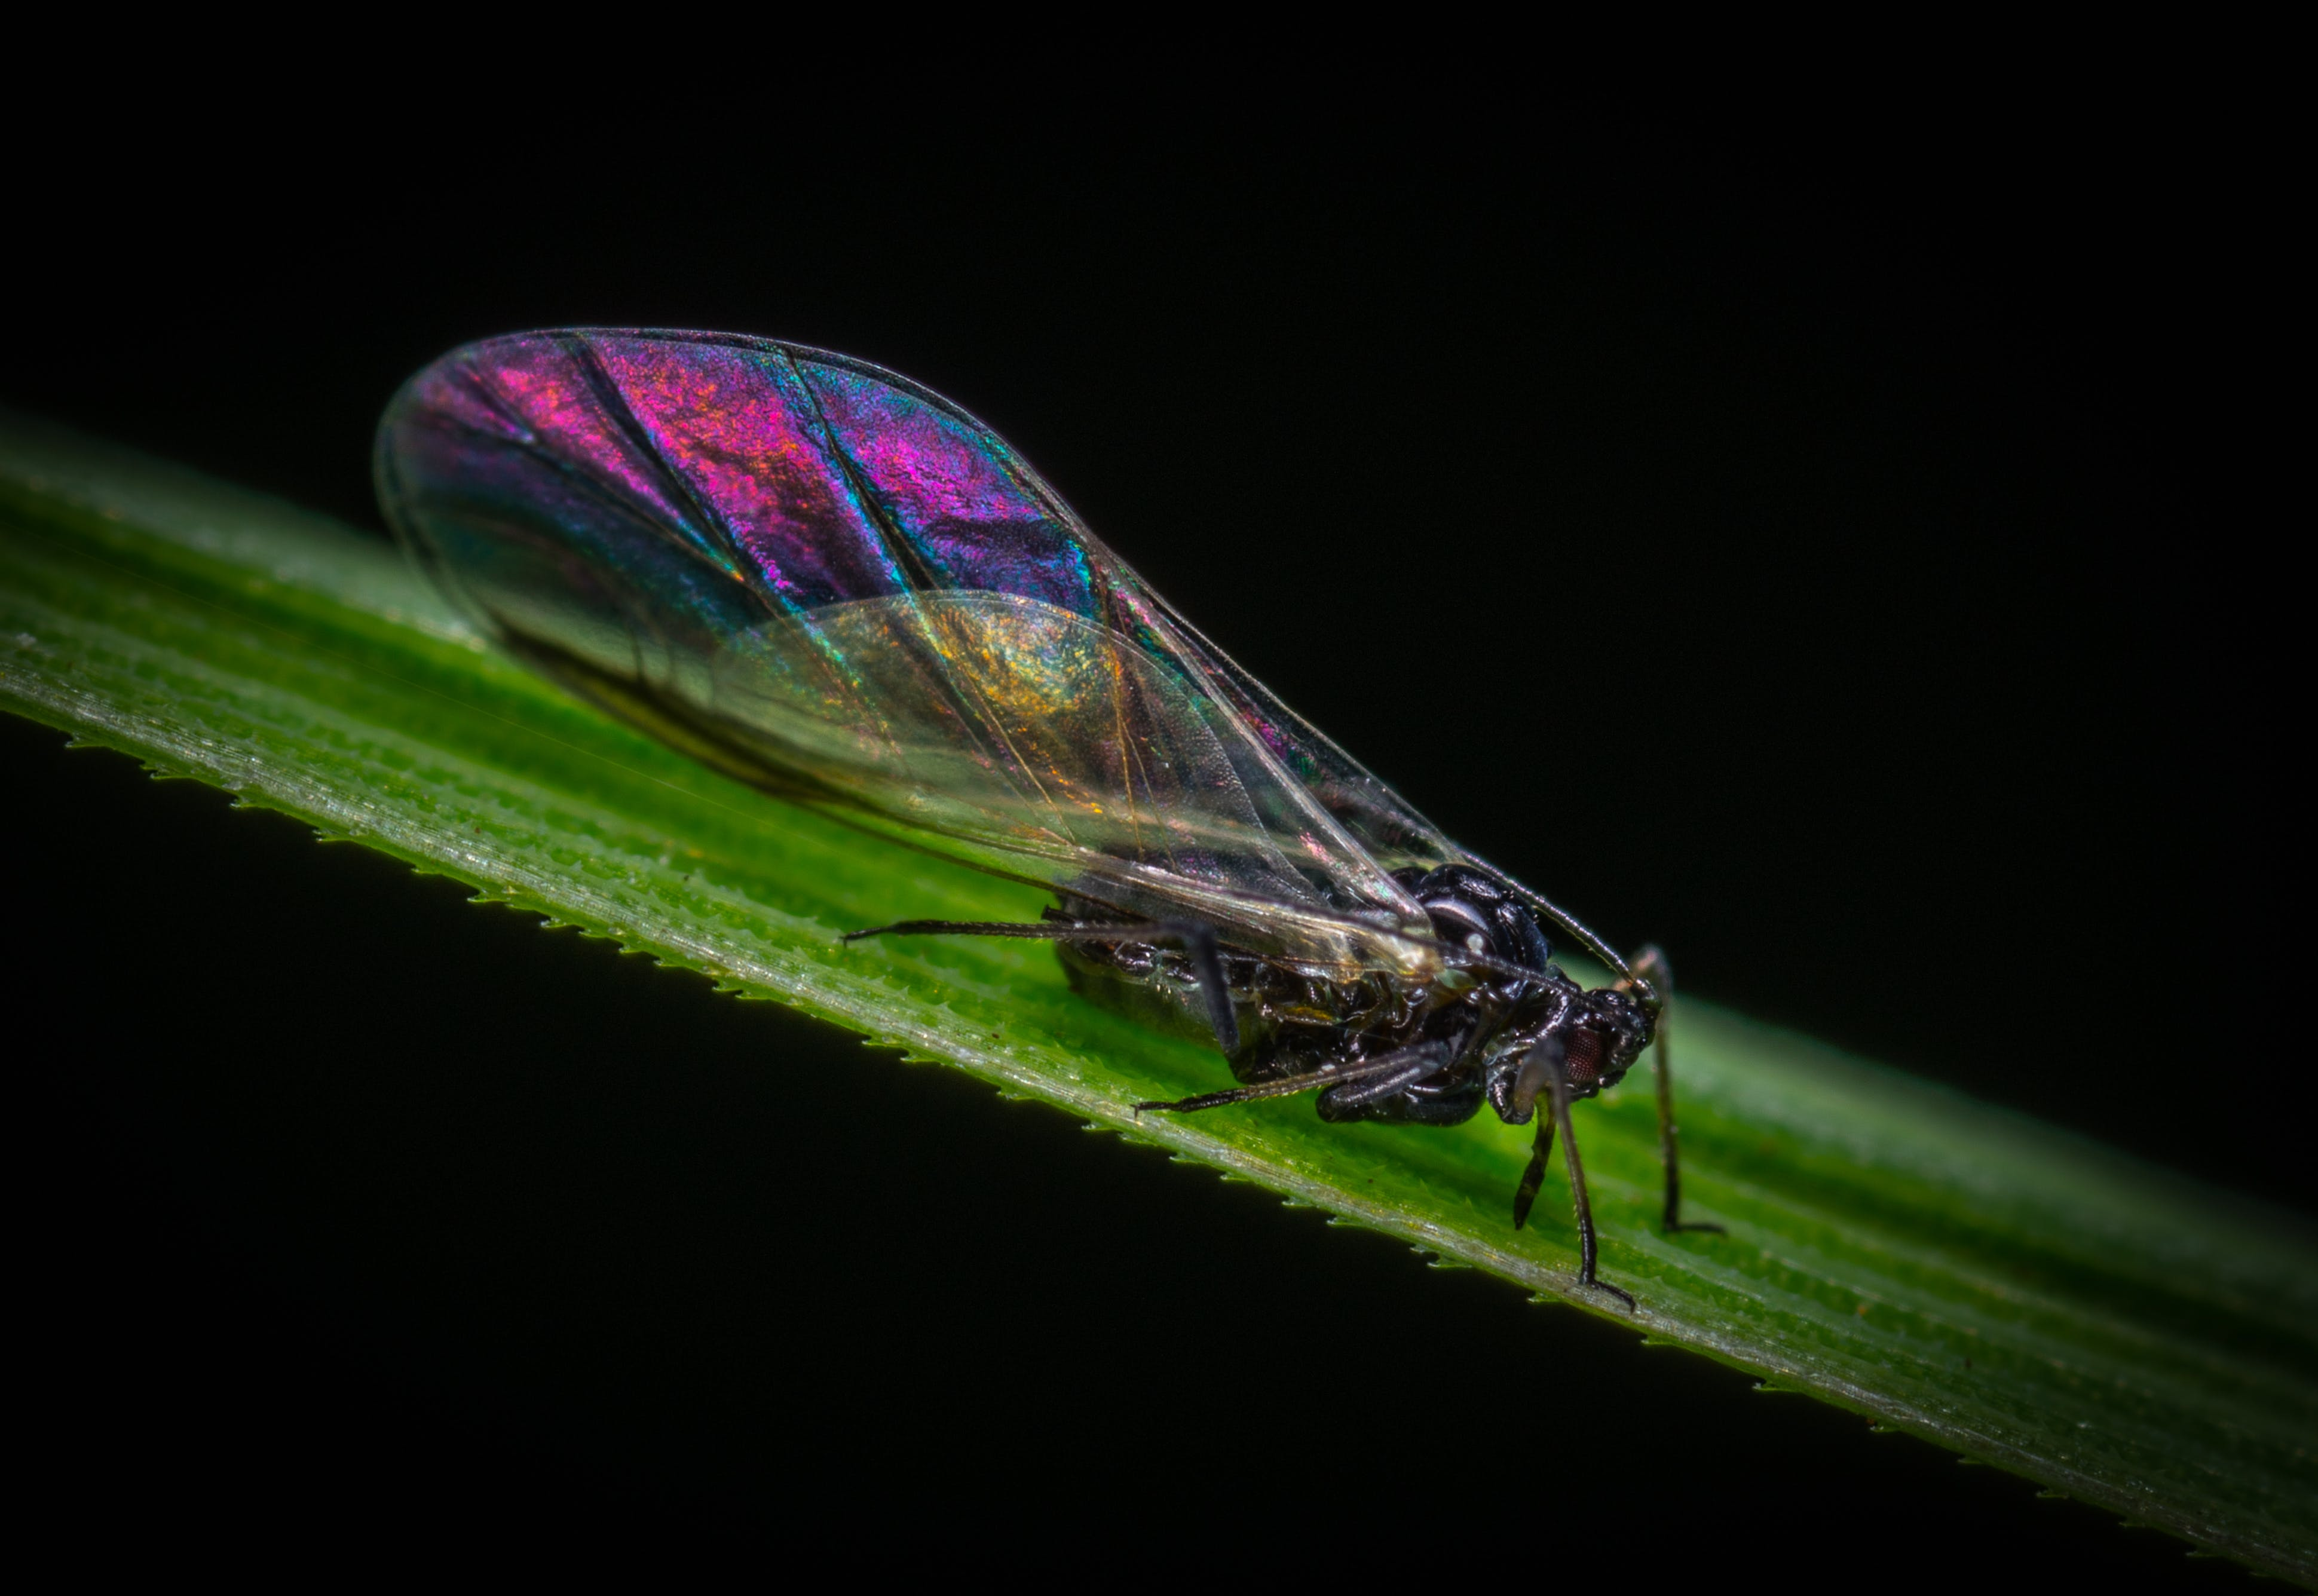 Purple, Black, and Brown Cicada on Green Leaf